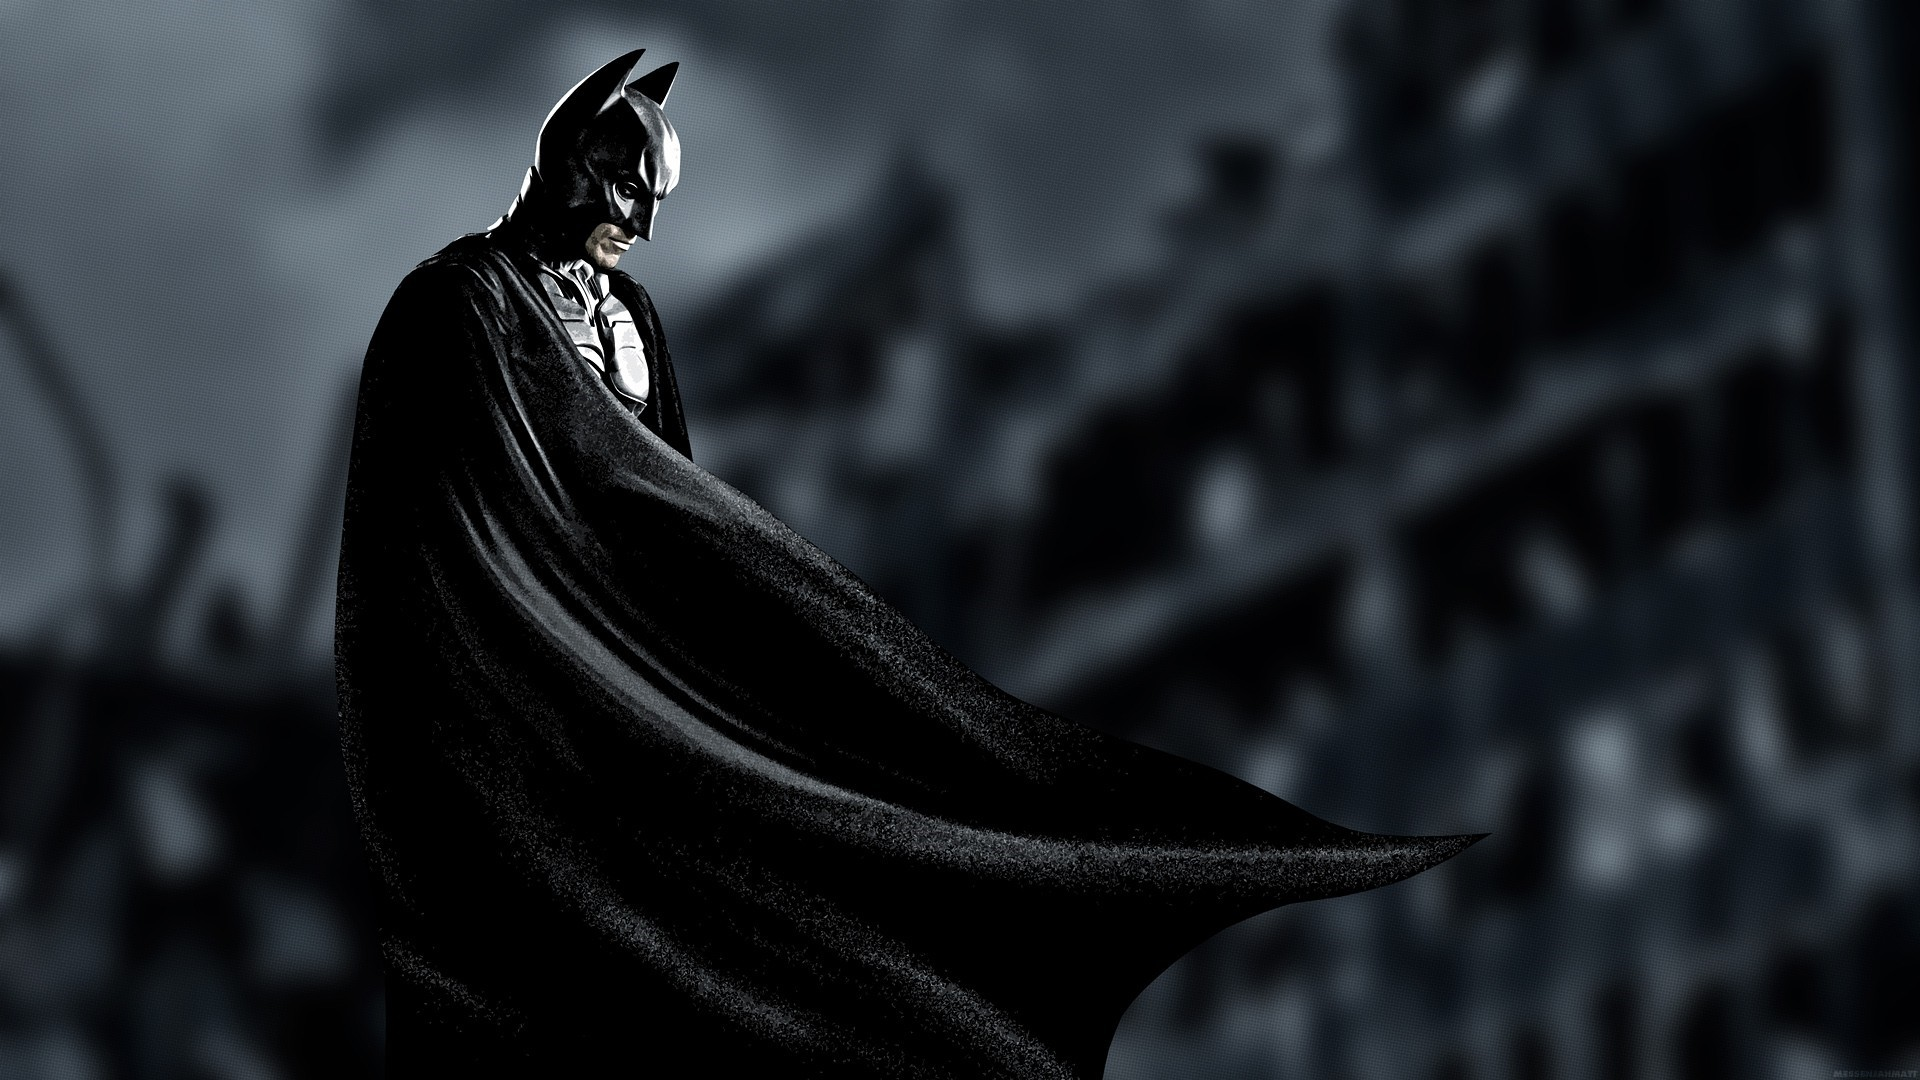 Collection of Download Wallpaper Batman on HDWallpapers ×